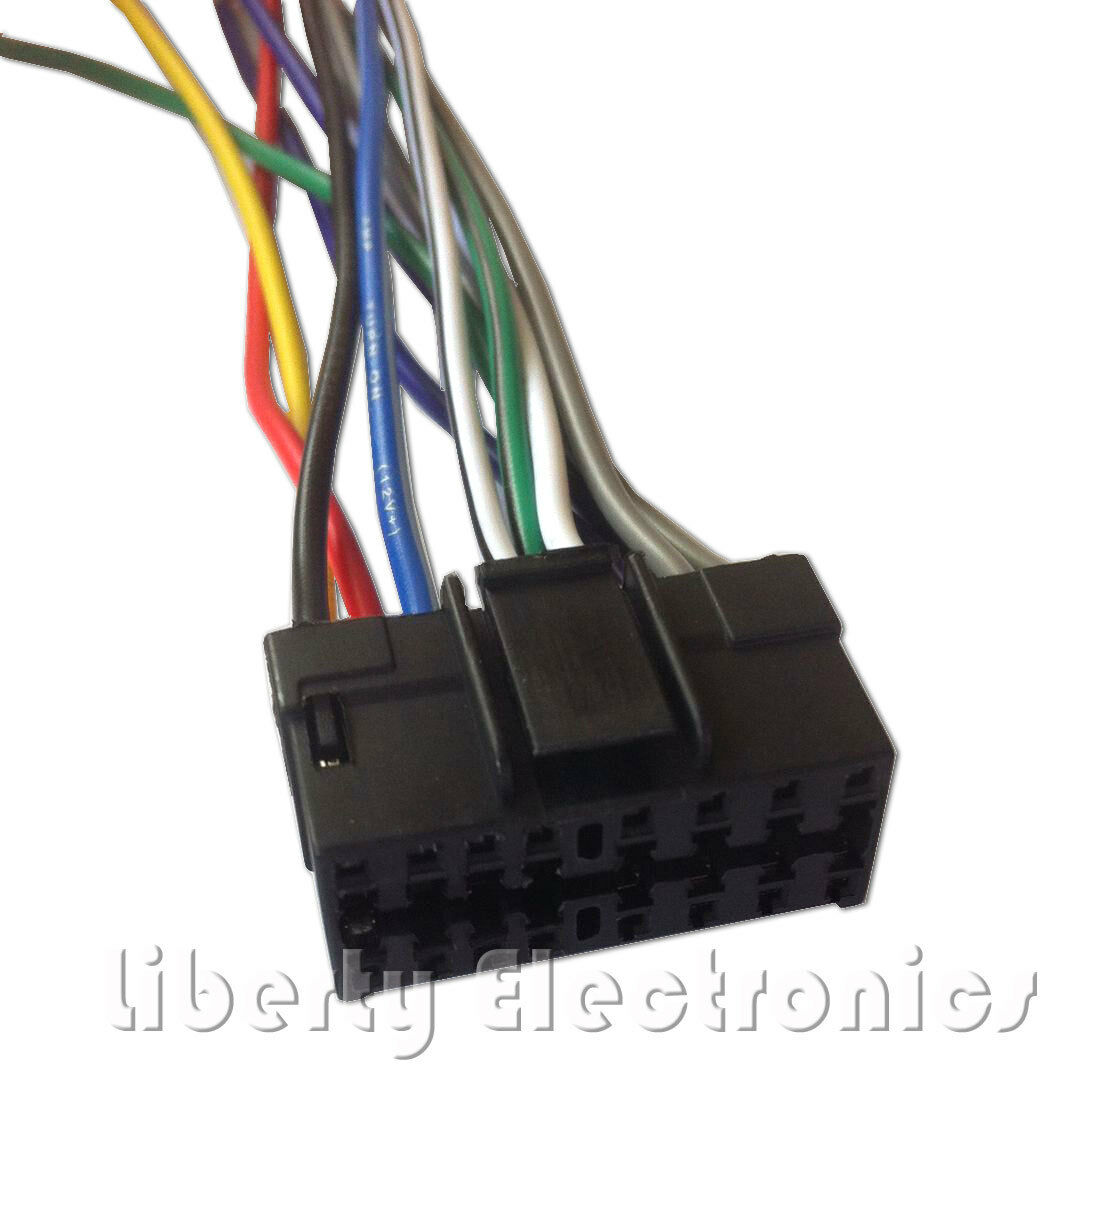 NEW WIRE HARNESS for PIONEER DEH P20 DEH P200?resize=665%2C724&ssl=1 pioneer deh p2000 wiring diagram pioneer wiring diagrams collection  at gsmx.co